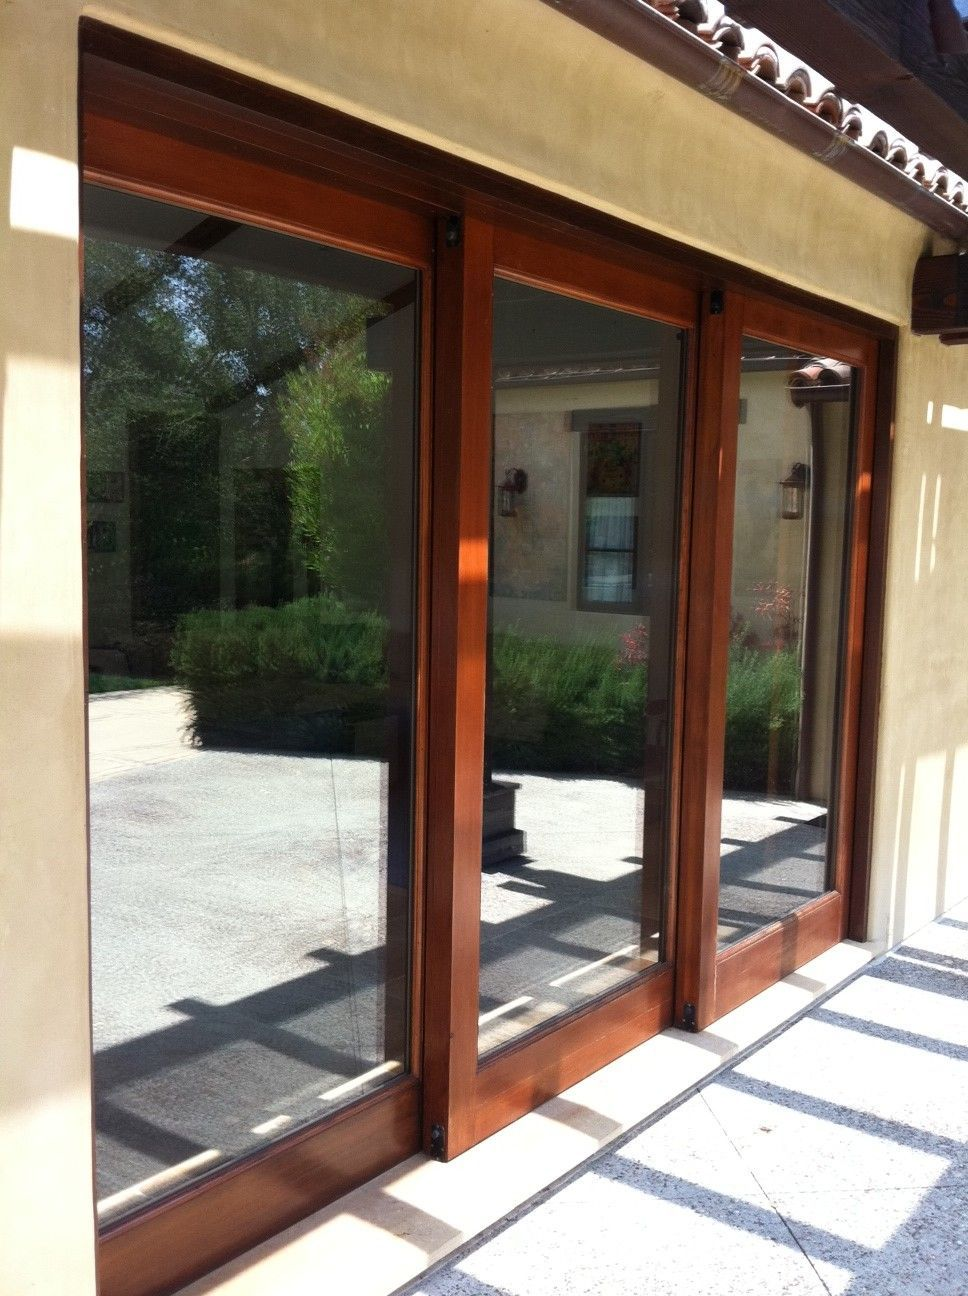 House European Exterior Sliding Glass Doors Size Of Sliding Glass Doors Patio Sliding Glass Doors Patio Exterior Sliding Glass Doors